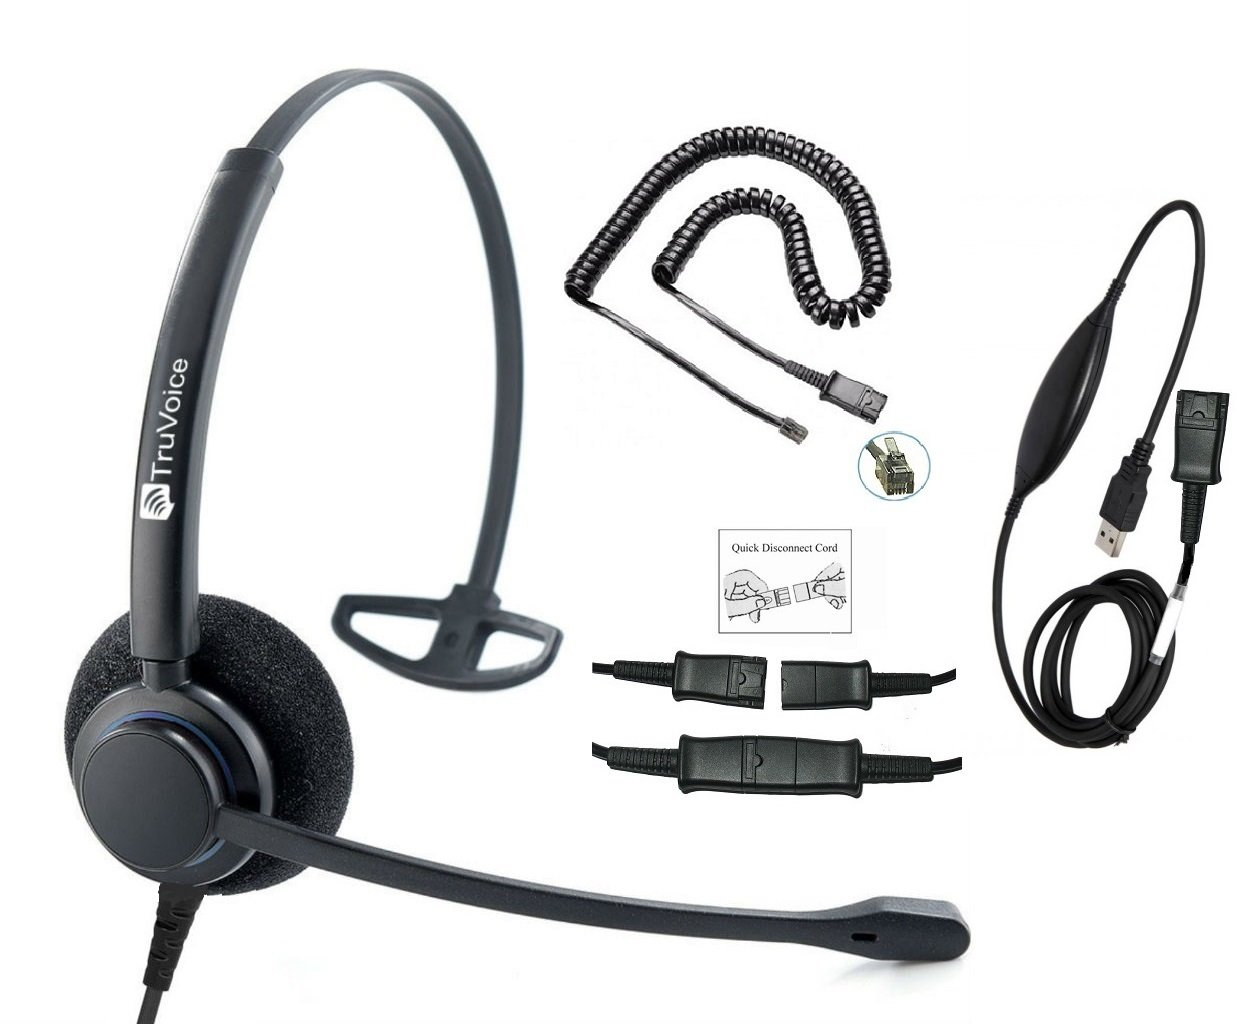 TruVoice HD-100 Professional Corded Single Ear NC Headset With USB and U10P Cable works with Mitel, Polycom VVX, Nortel, Avaya Digital, Analog Deskphones and PC (Softphone) - Complete Solution